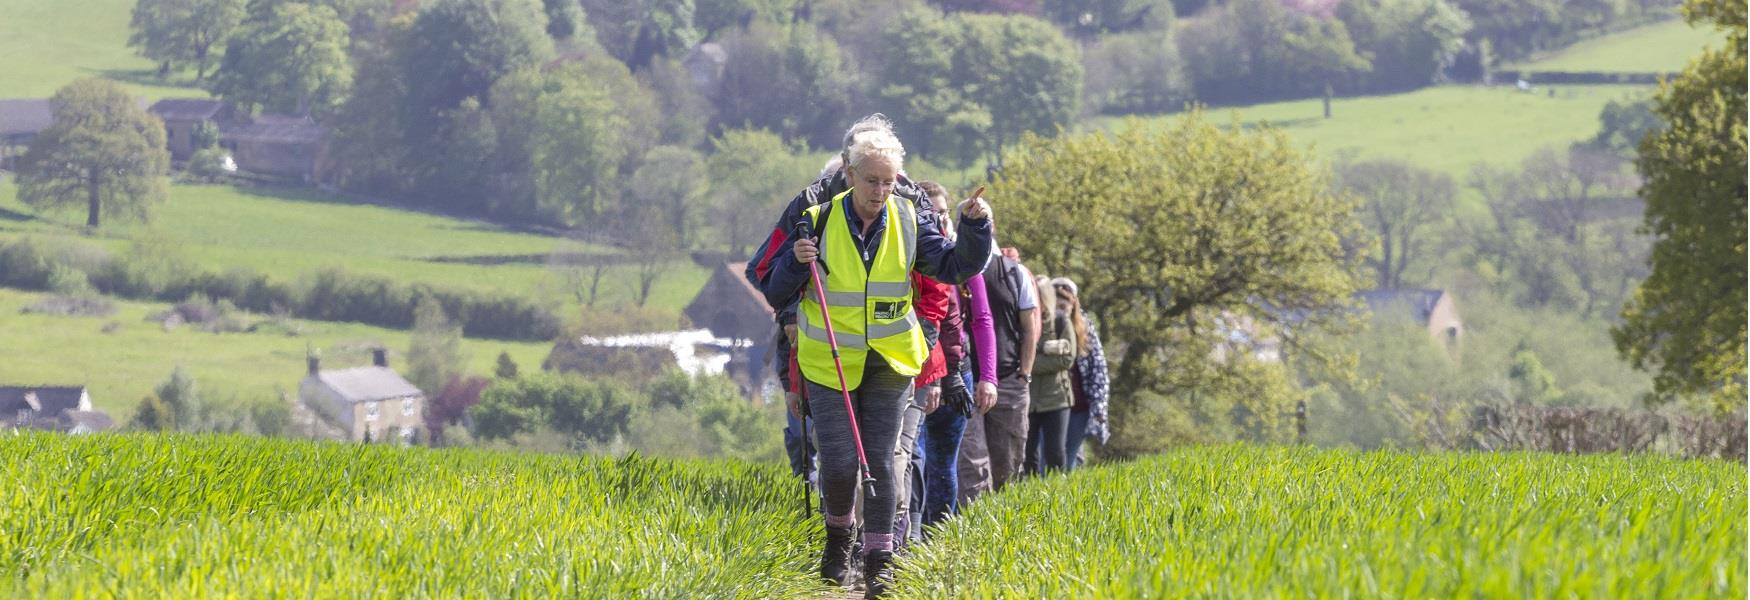 Walkers at the Chesterfield Area Walking Festival